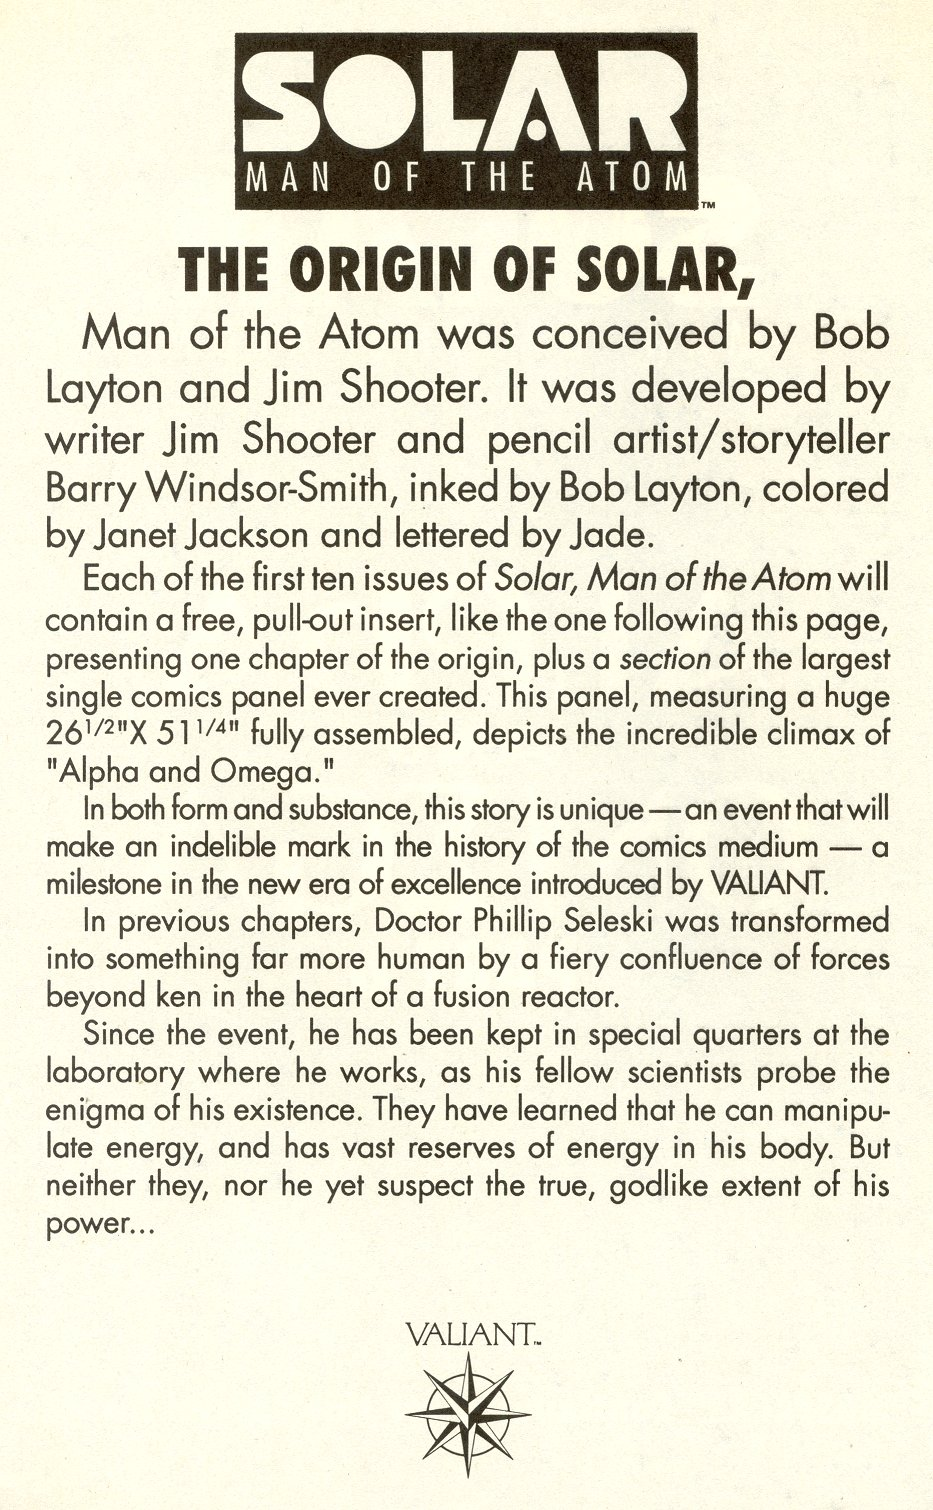 Read online Solar, Man of the Atom comic -  Issue #6 - 16